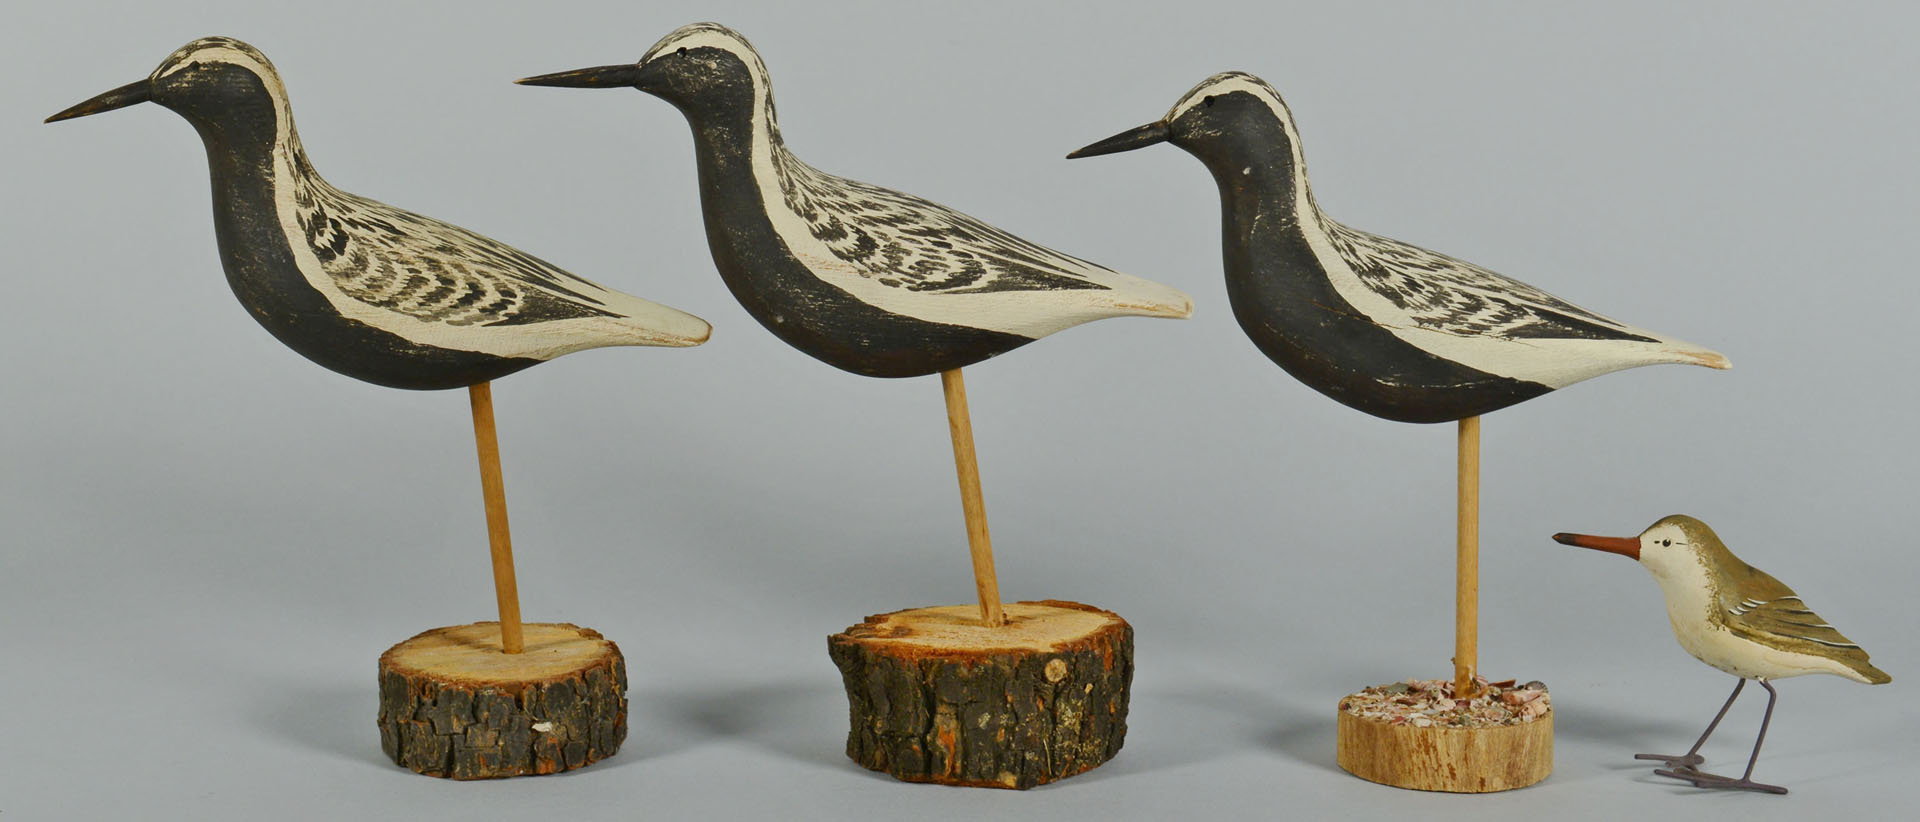 Lot 551: 13 Shorebirds by Ralph Coykendall